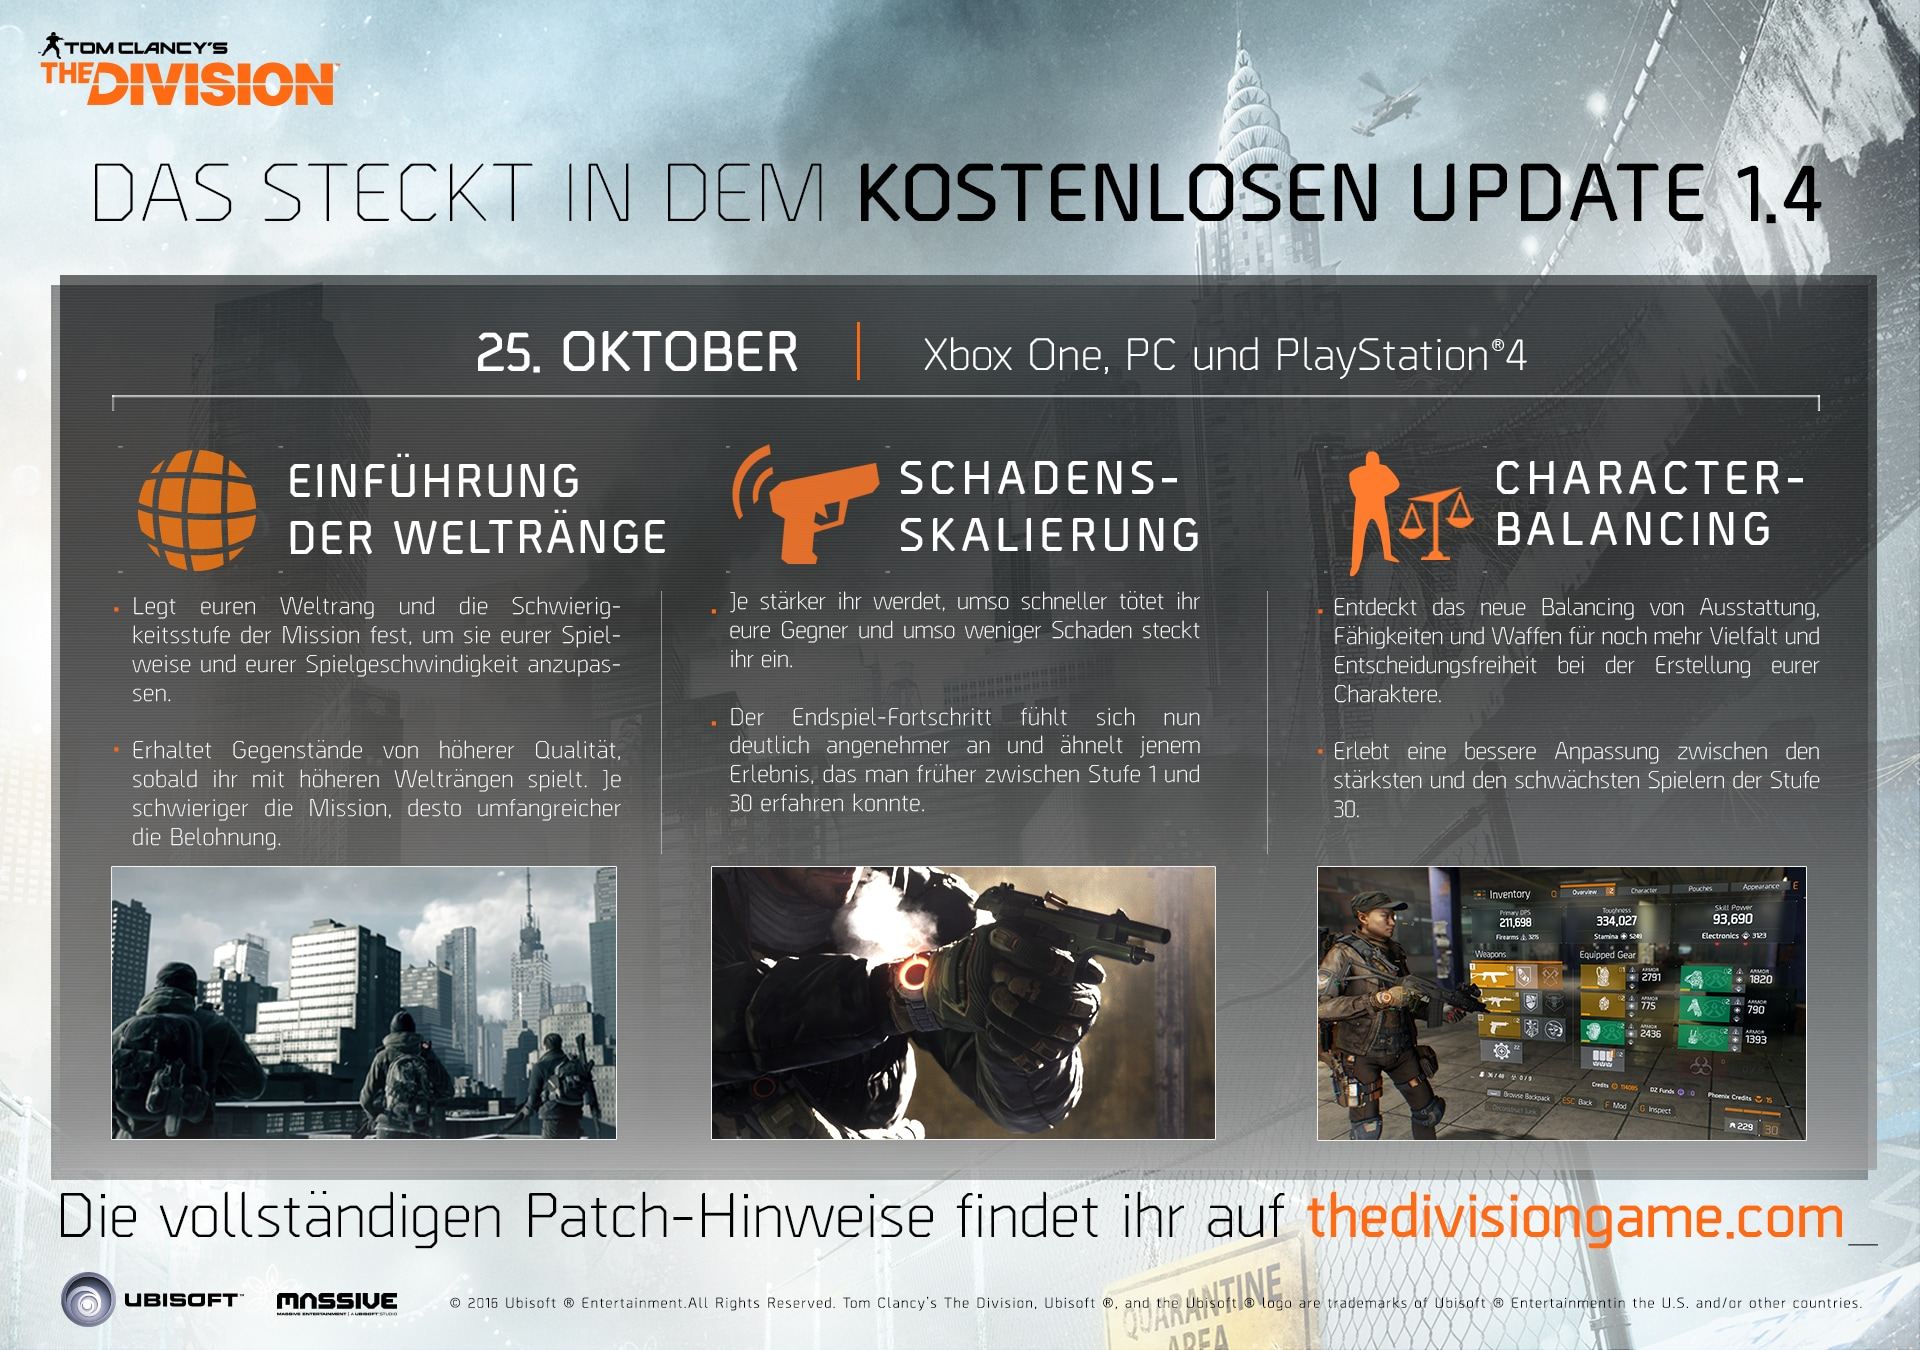 2016-10-25 [News] The Division Update 1